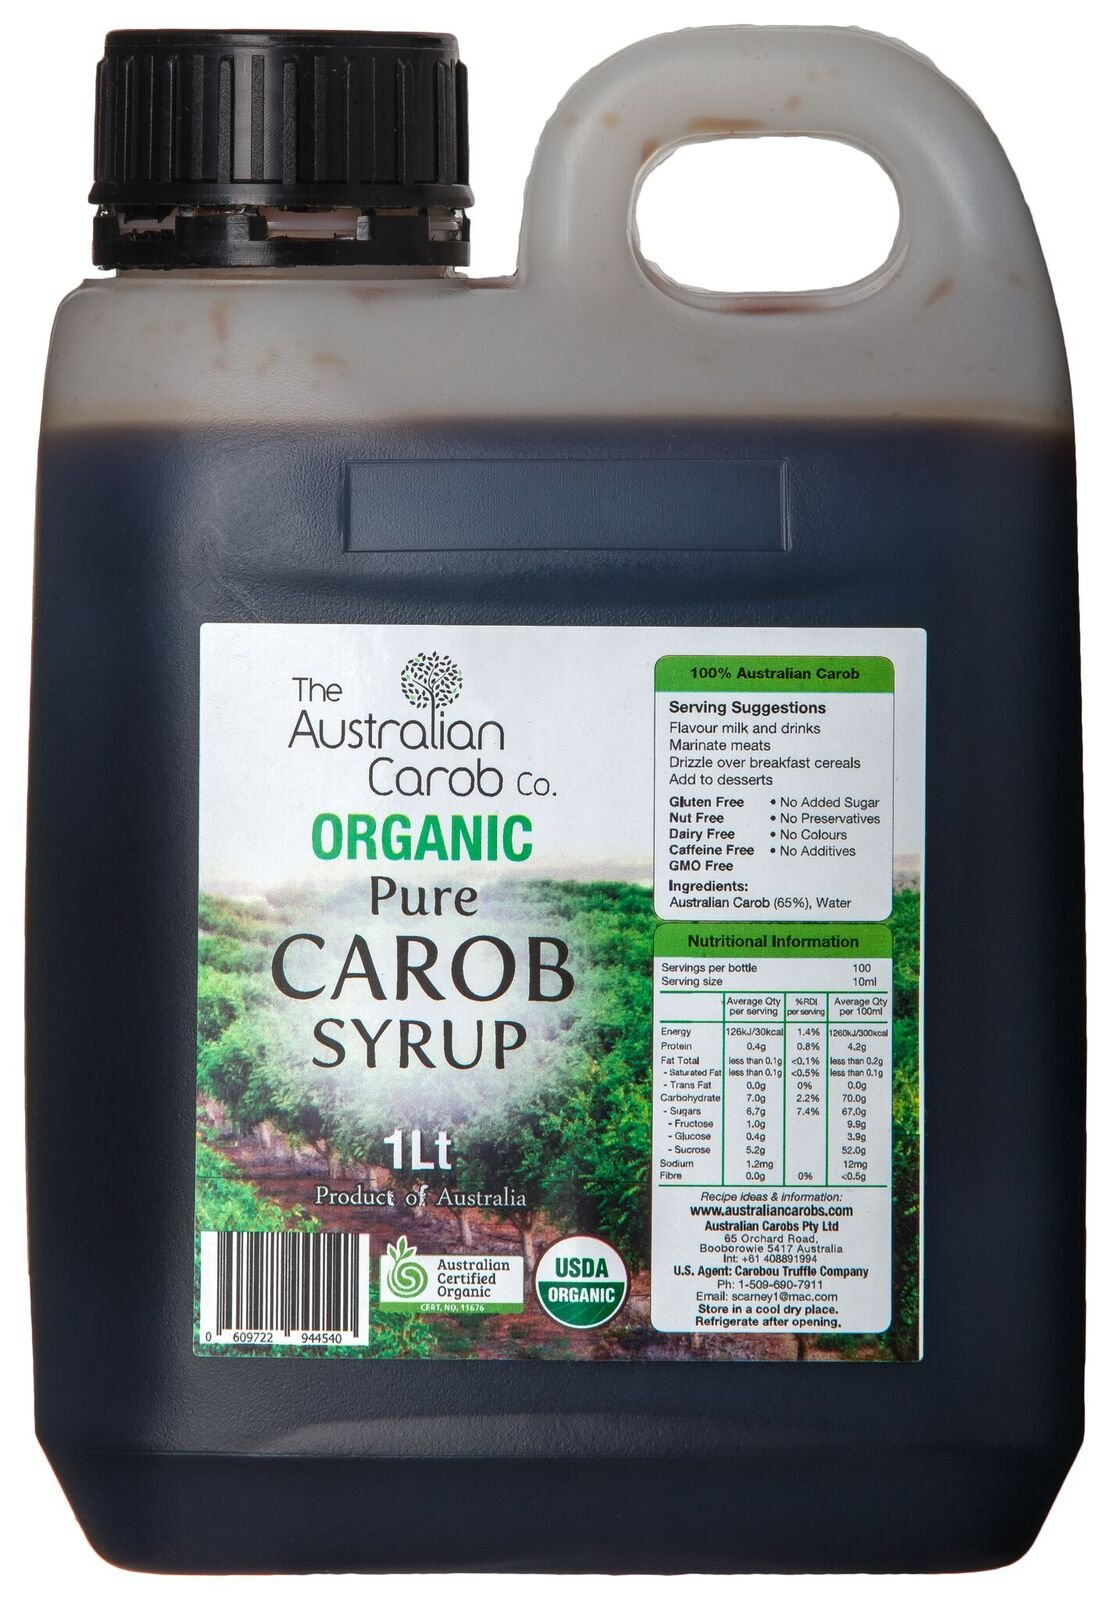 Australian, Organic, Pure, Carob Syrup, Superfood, 33.8fl.oz, Paleo, NON-GMO, World's #1 Best Tasting Pure Carob Syrup,Vegan, New Generation Carob, Carob, Carob Syrup, organic carob, Aussie SharkBars